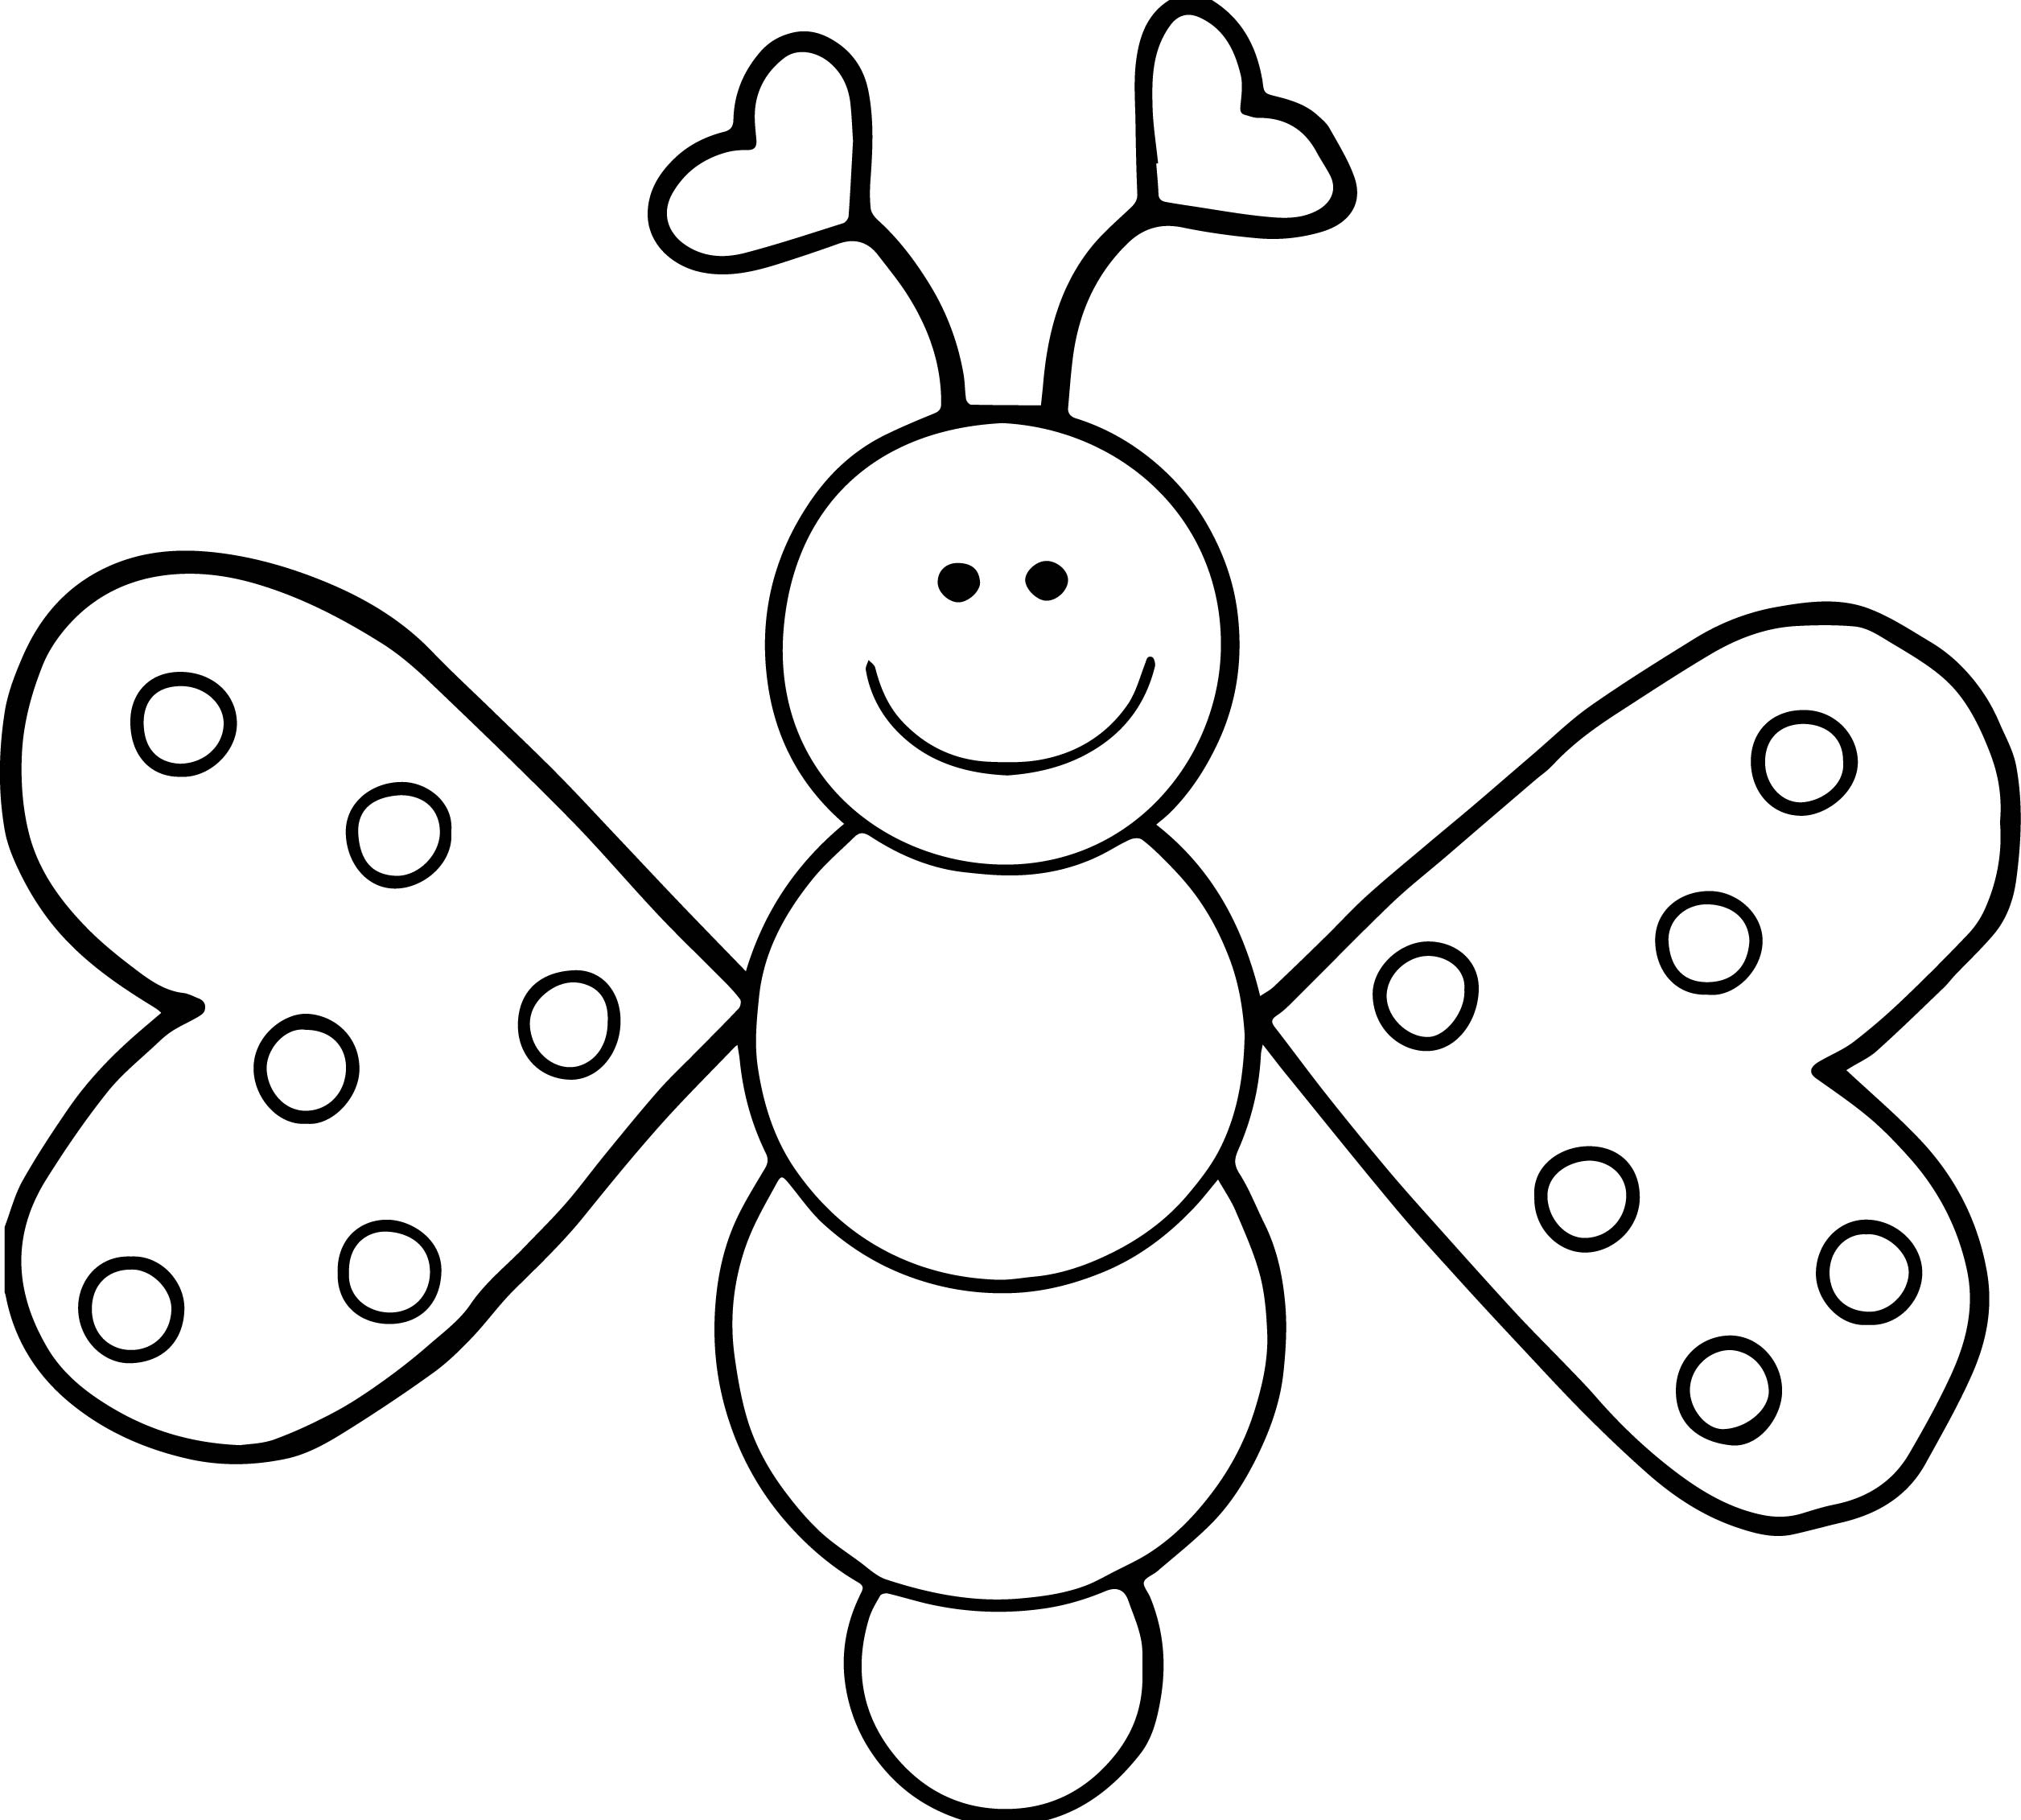 Cartoon Girl Butterfly Coloring Page | Wecoloringpage.com - photo#42